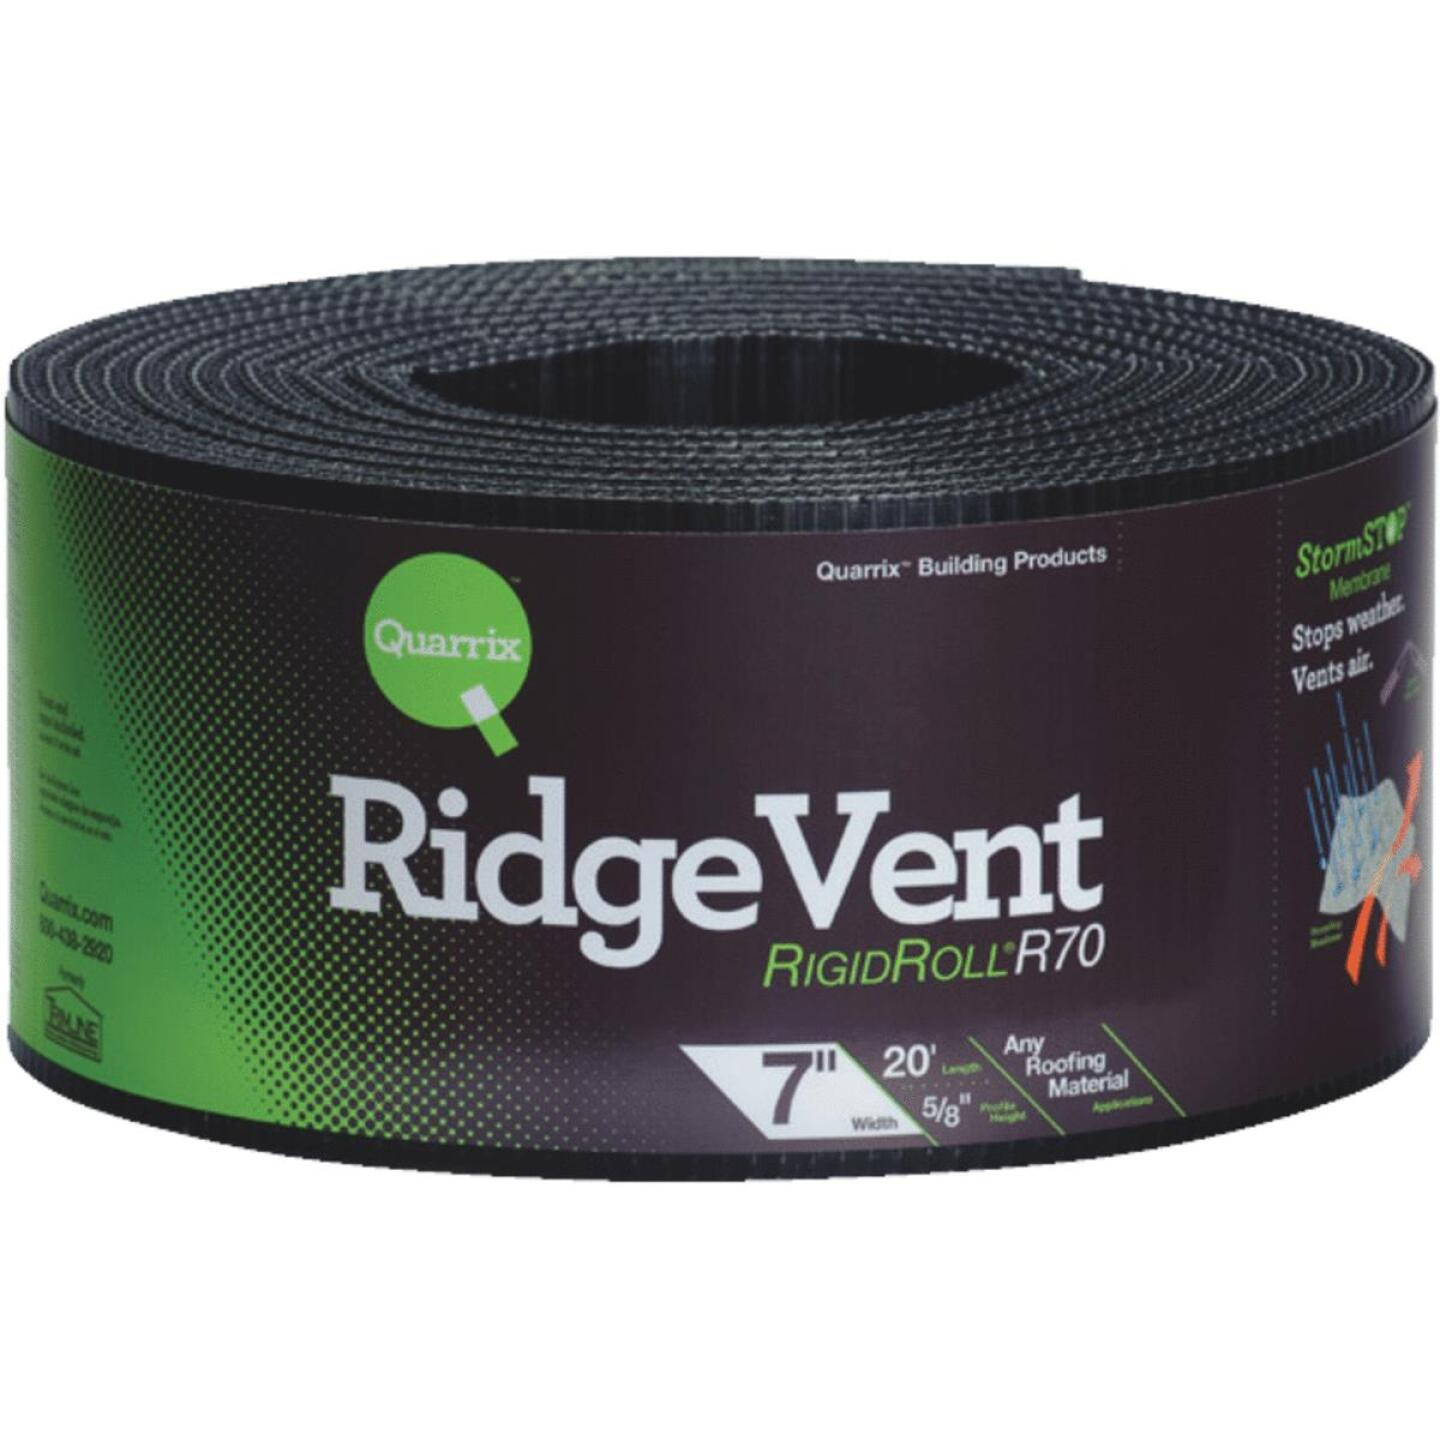 Quarrix 7 In. x 20 Ft. Shingle-Over Rolled Ridge Vent Image 1